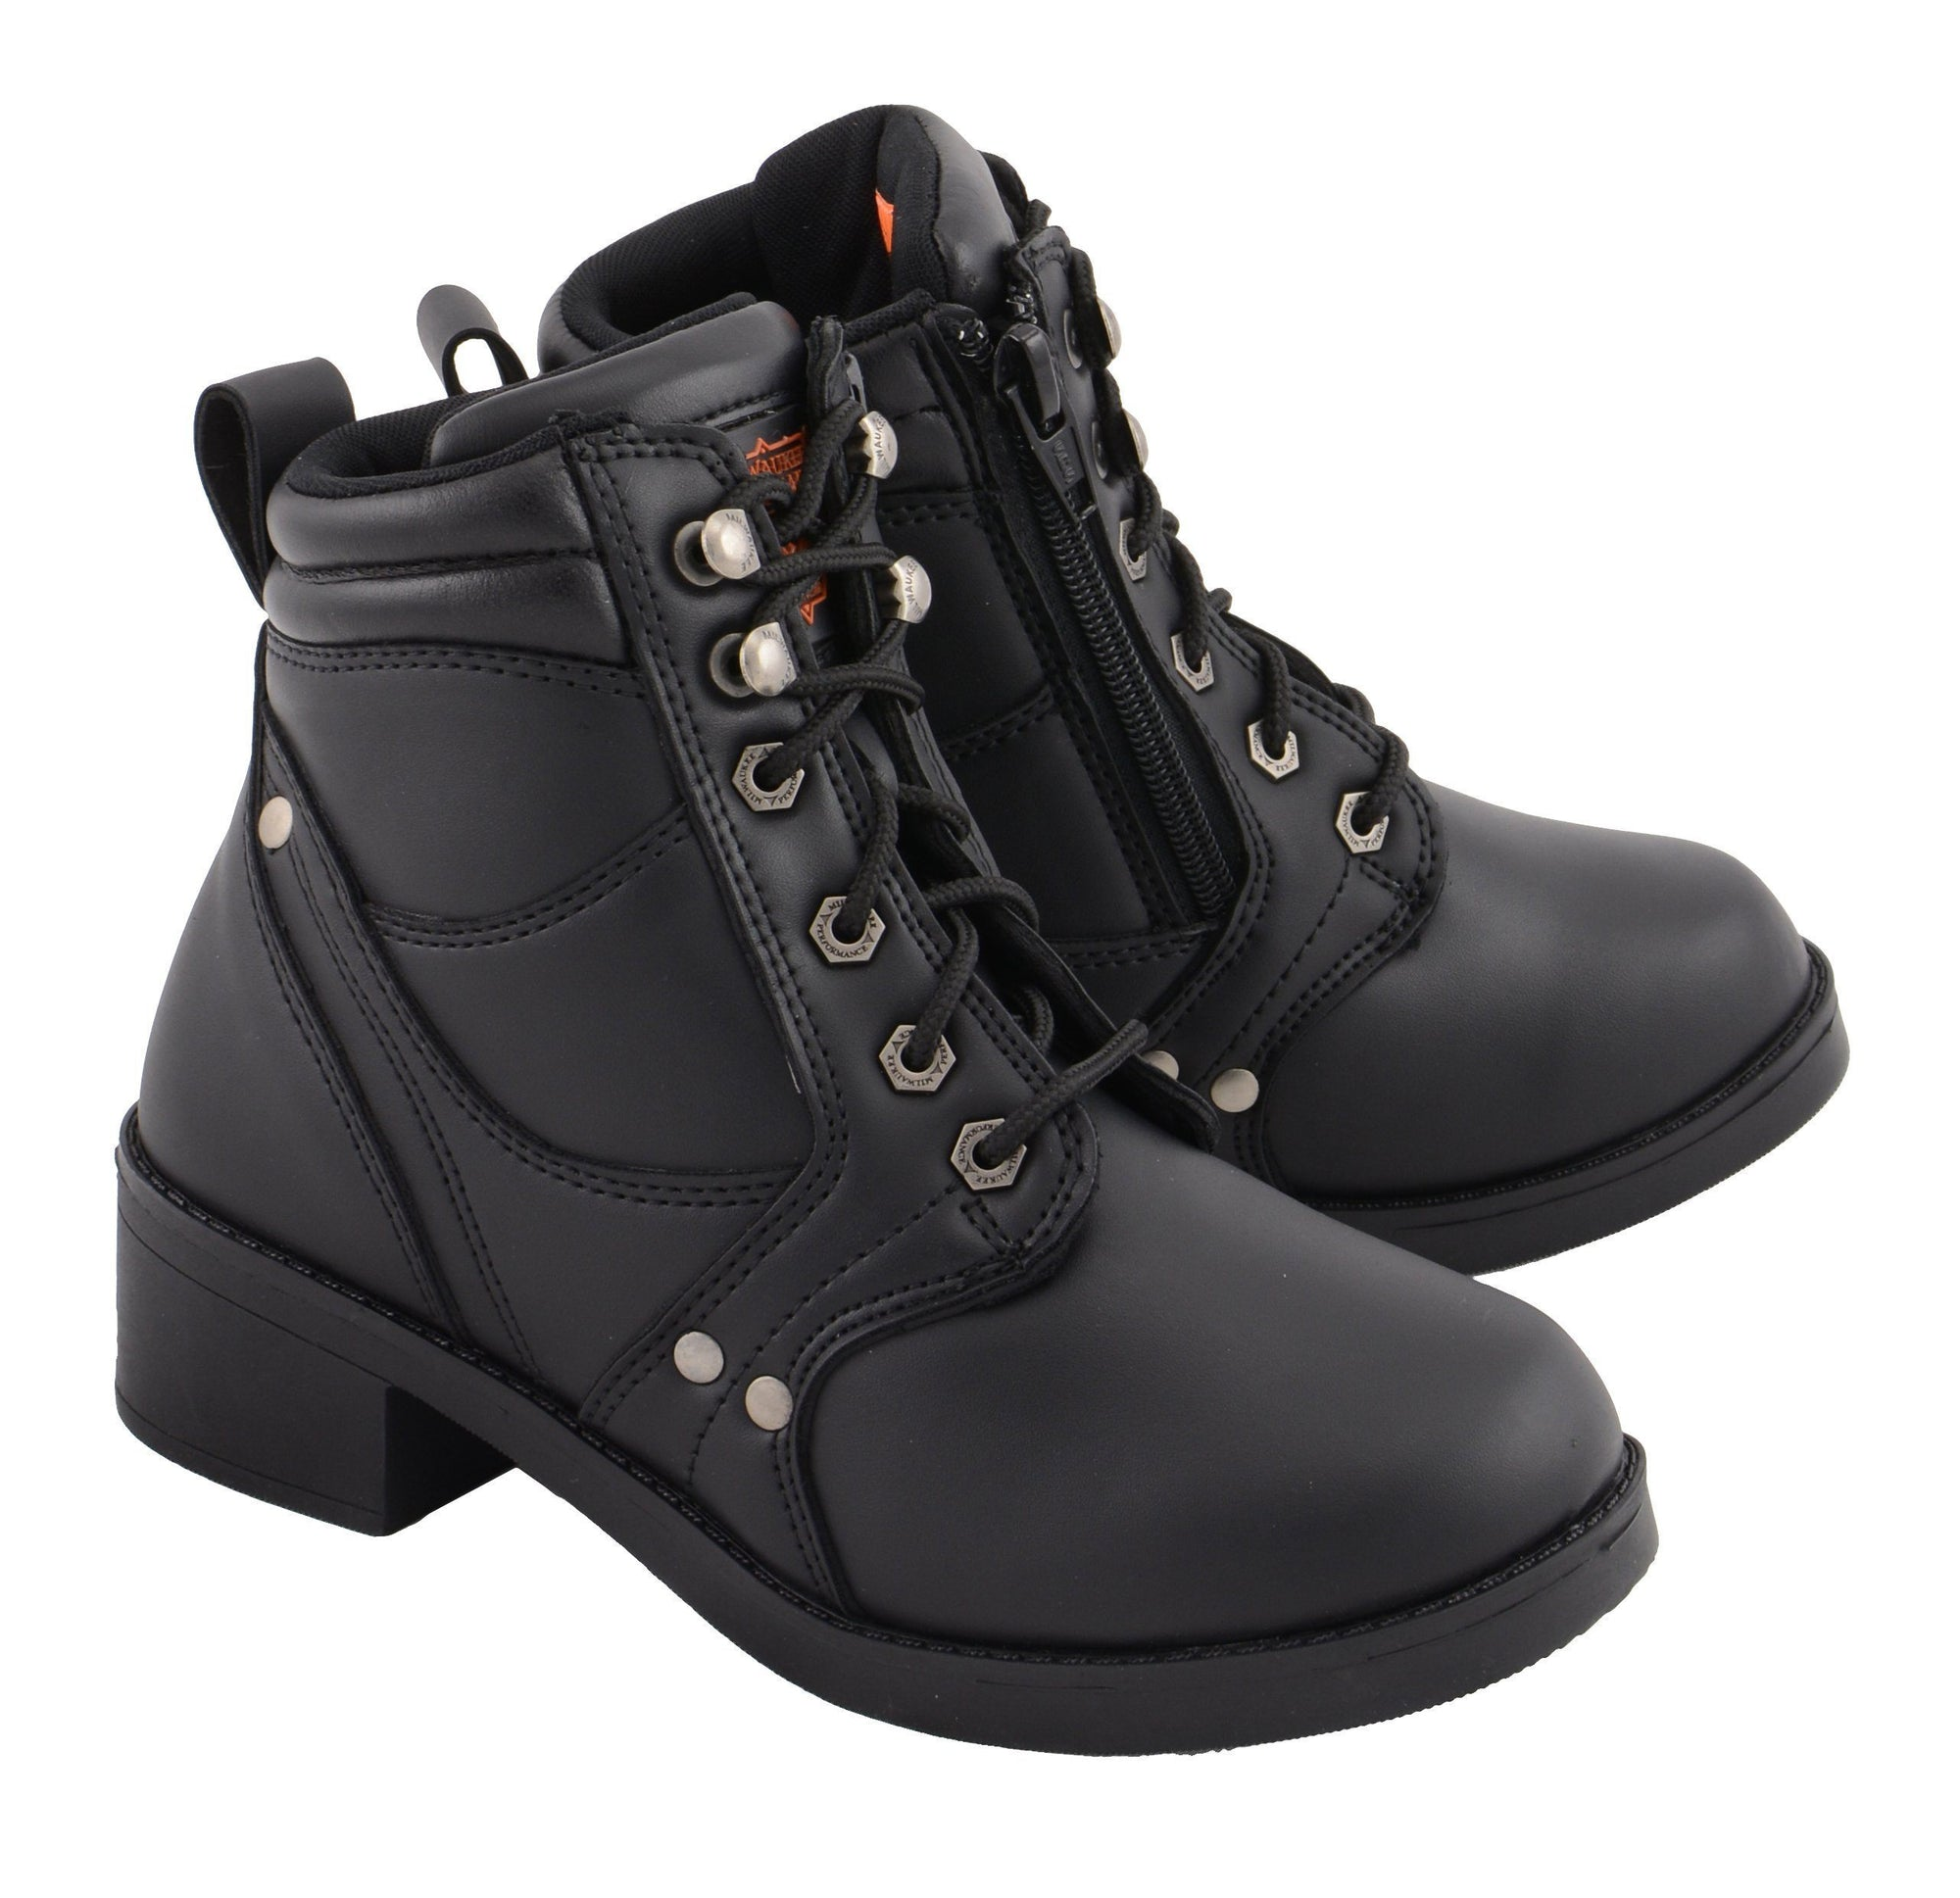 Milwaukee Leather MBK9265 Boys Black Lace-Up Boots with Side Zipper